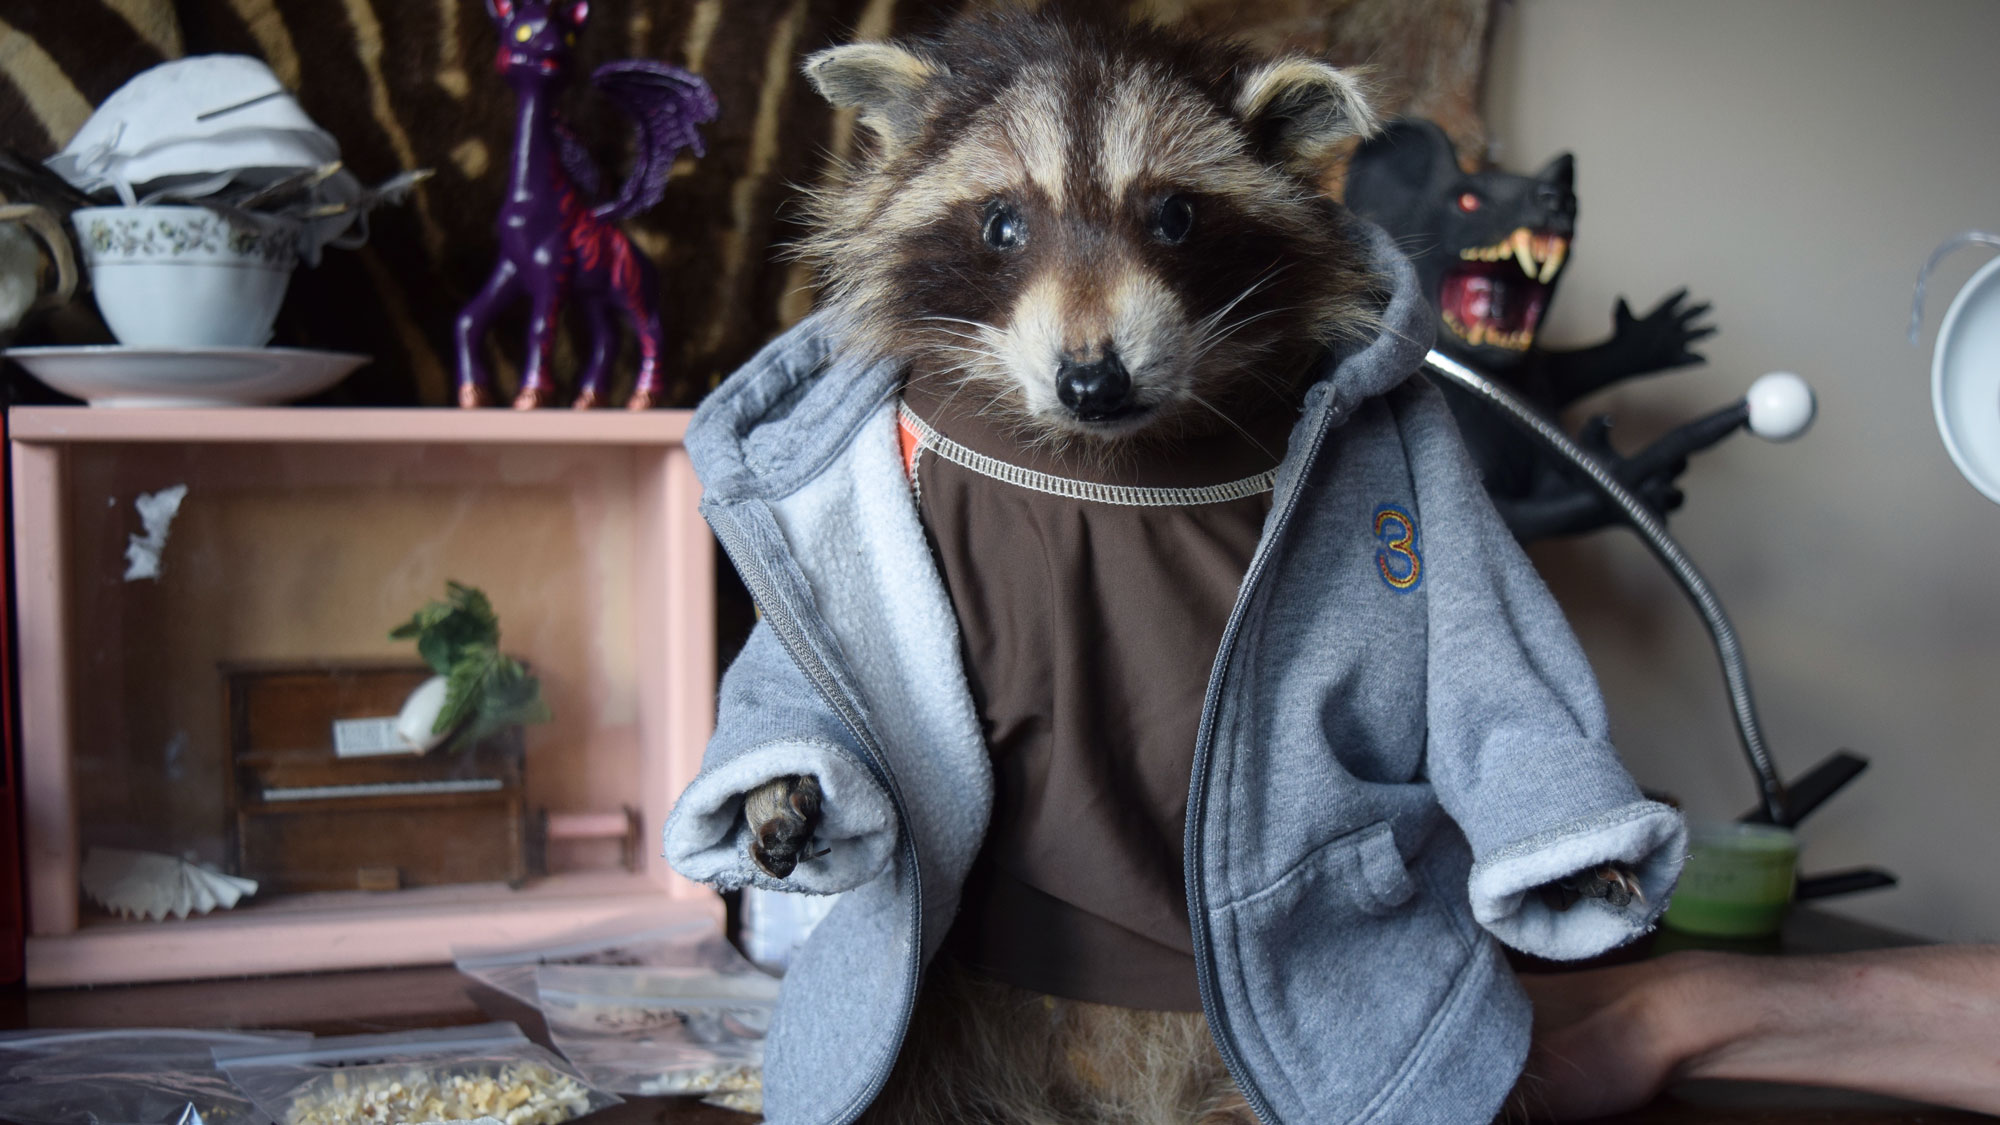 This raccoon, named Derpy, is one of Hillman's many creatures that he dressed up in outfits.